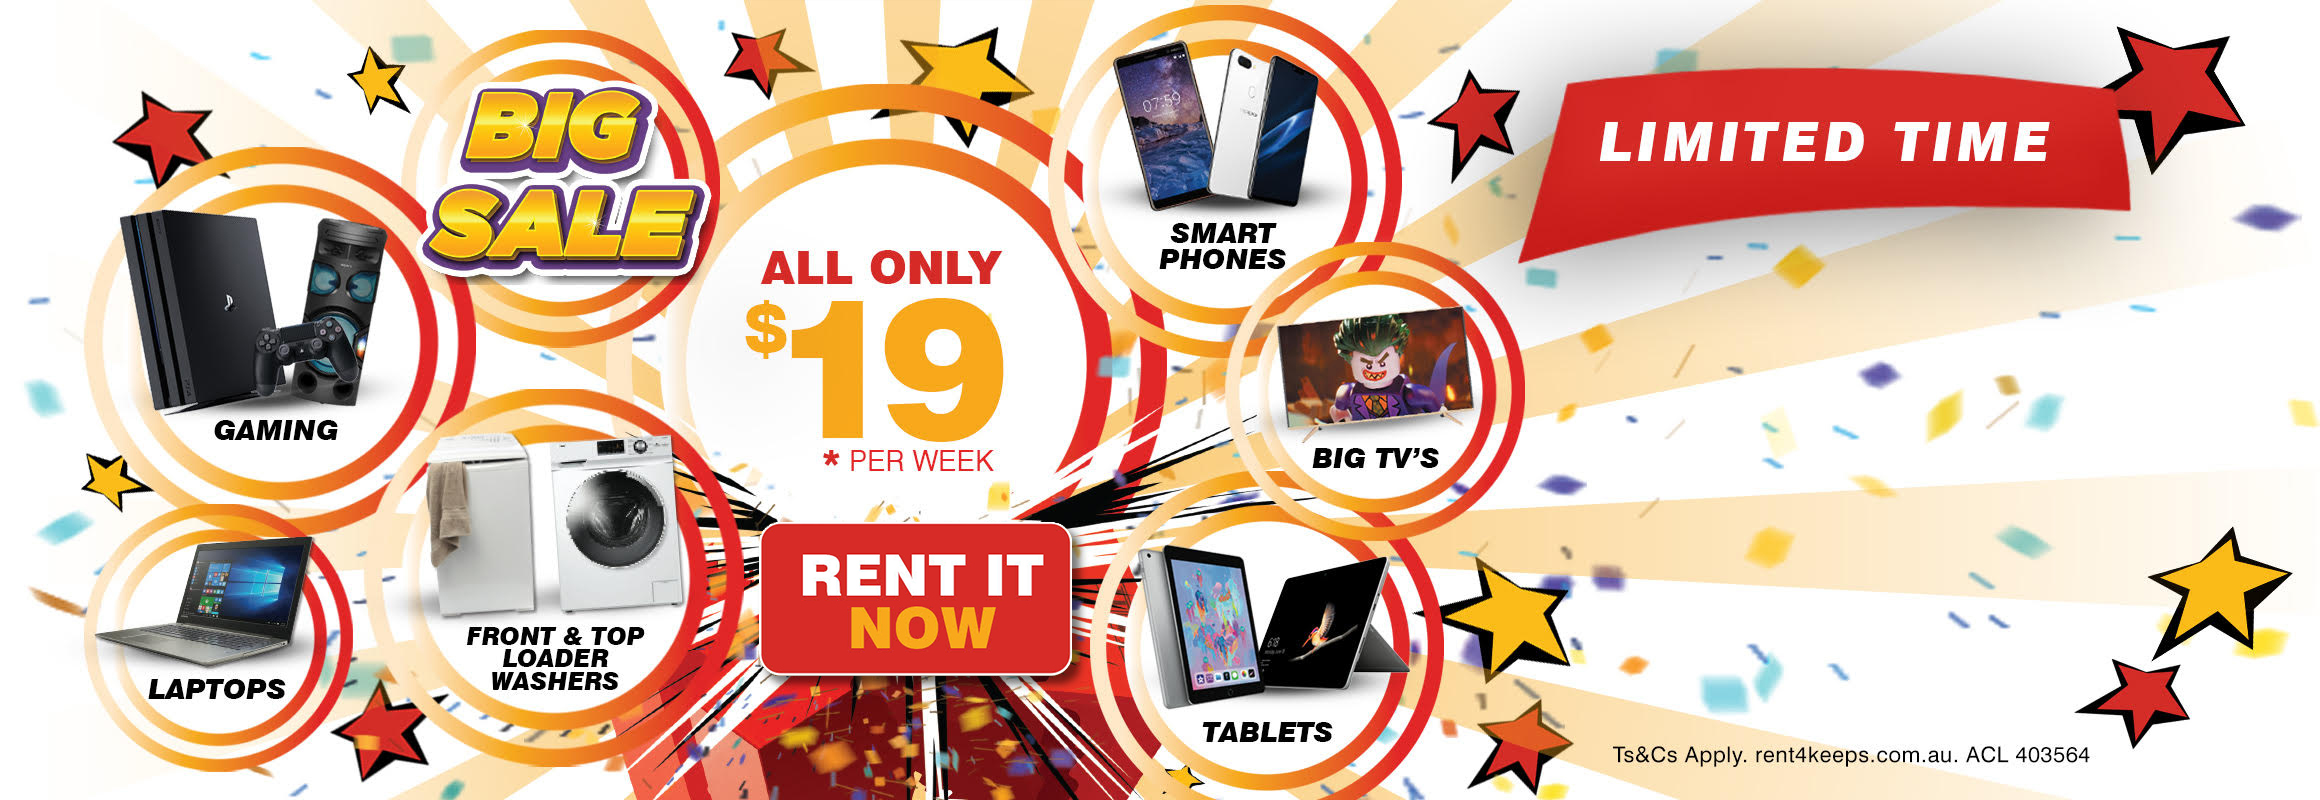 Rent4Keeps Big $19 Sale: Rent to own it now